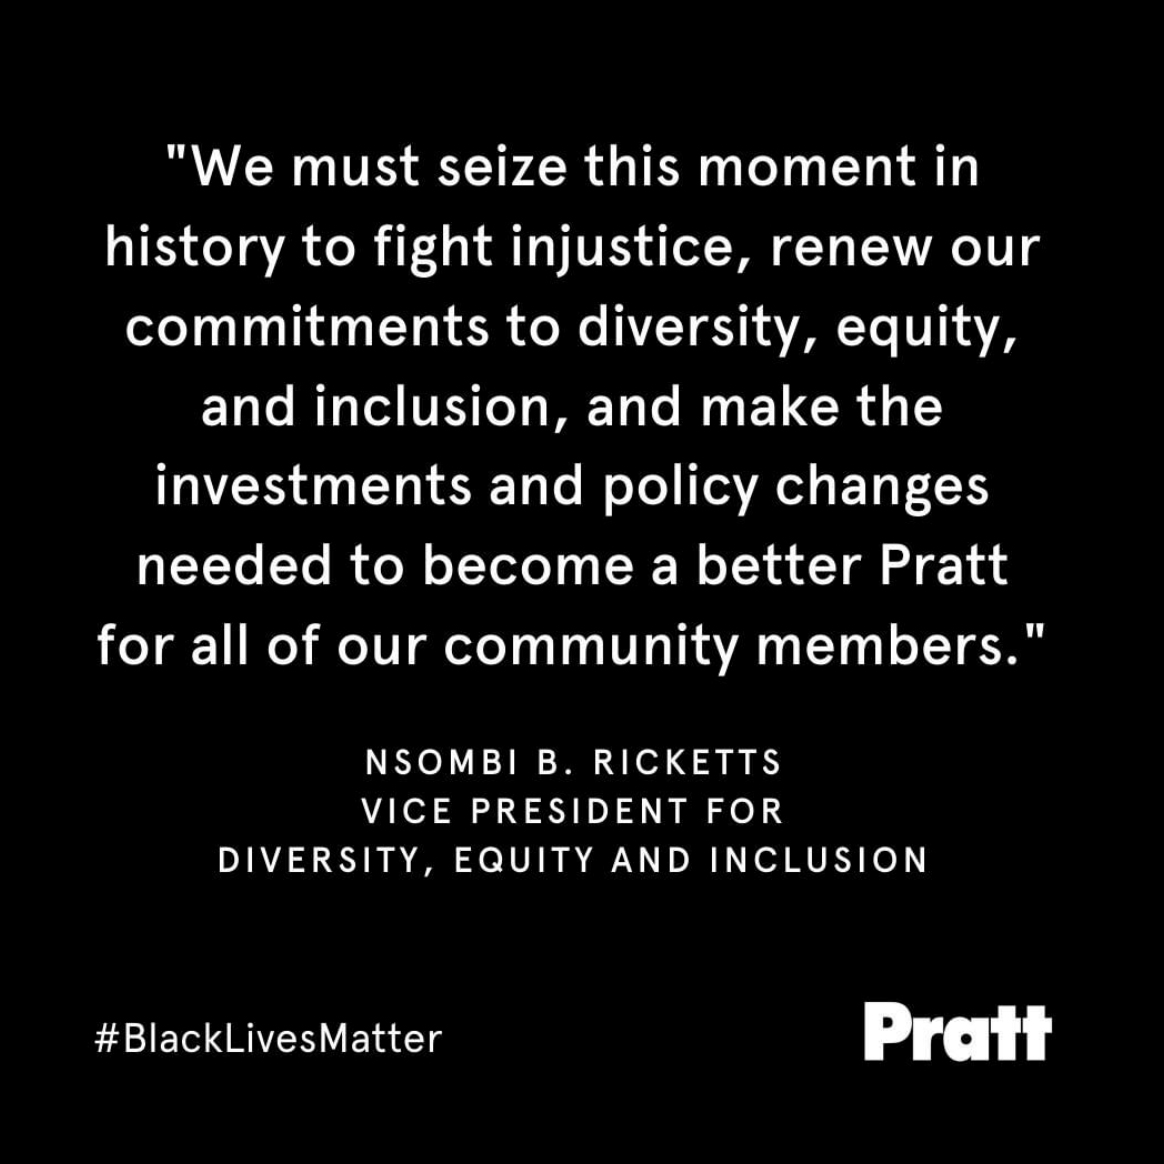 A screengrab that includes a statement from Nsombi B. Ricketts, Vice President for Diversity, Equity, and Inclusion that reads, We must seize this moment in history to fight injustice, renew our commitments to diversity, equity, and inclusion, and make the investments and policy changes needed to become a better Pratt for all of our community members.